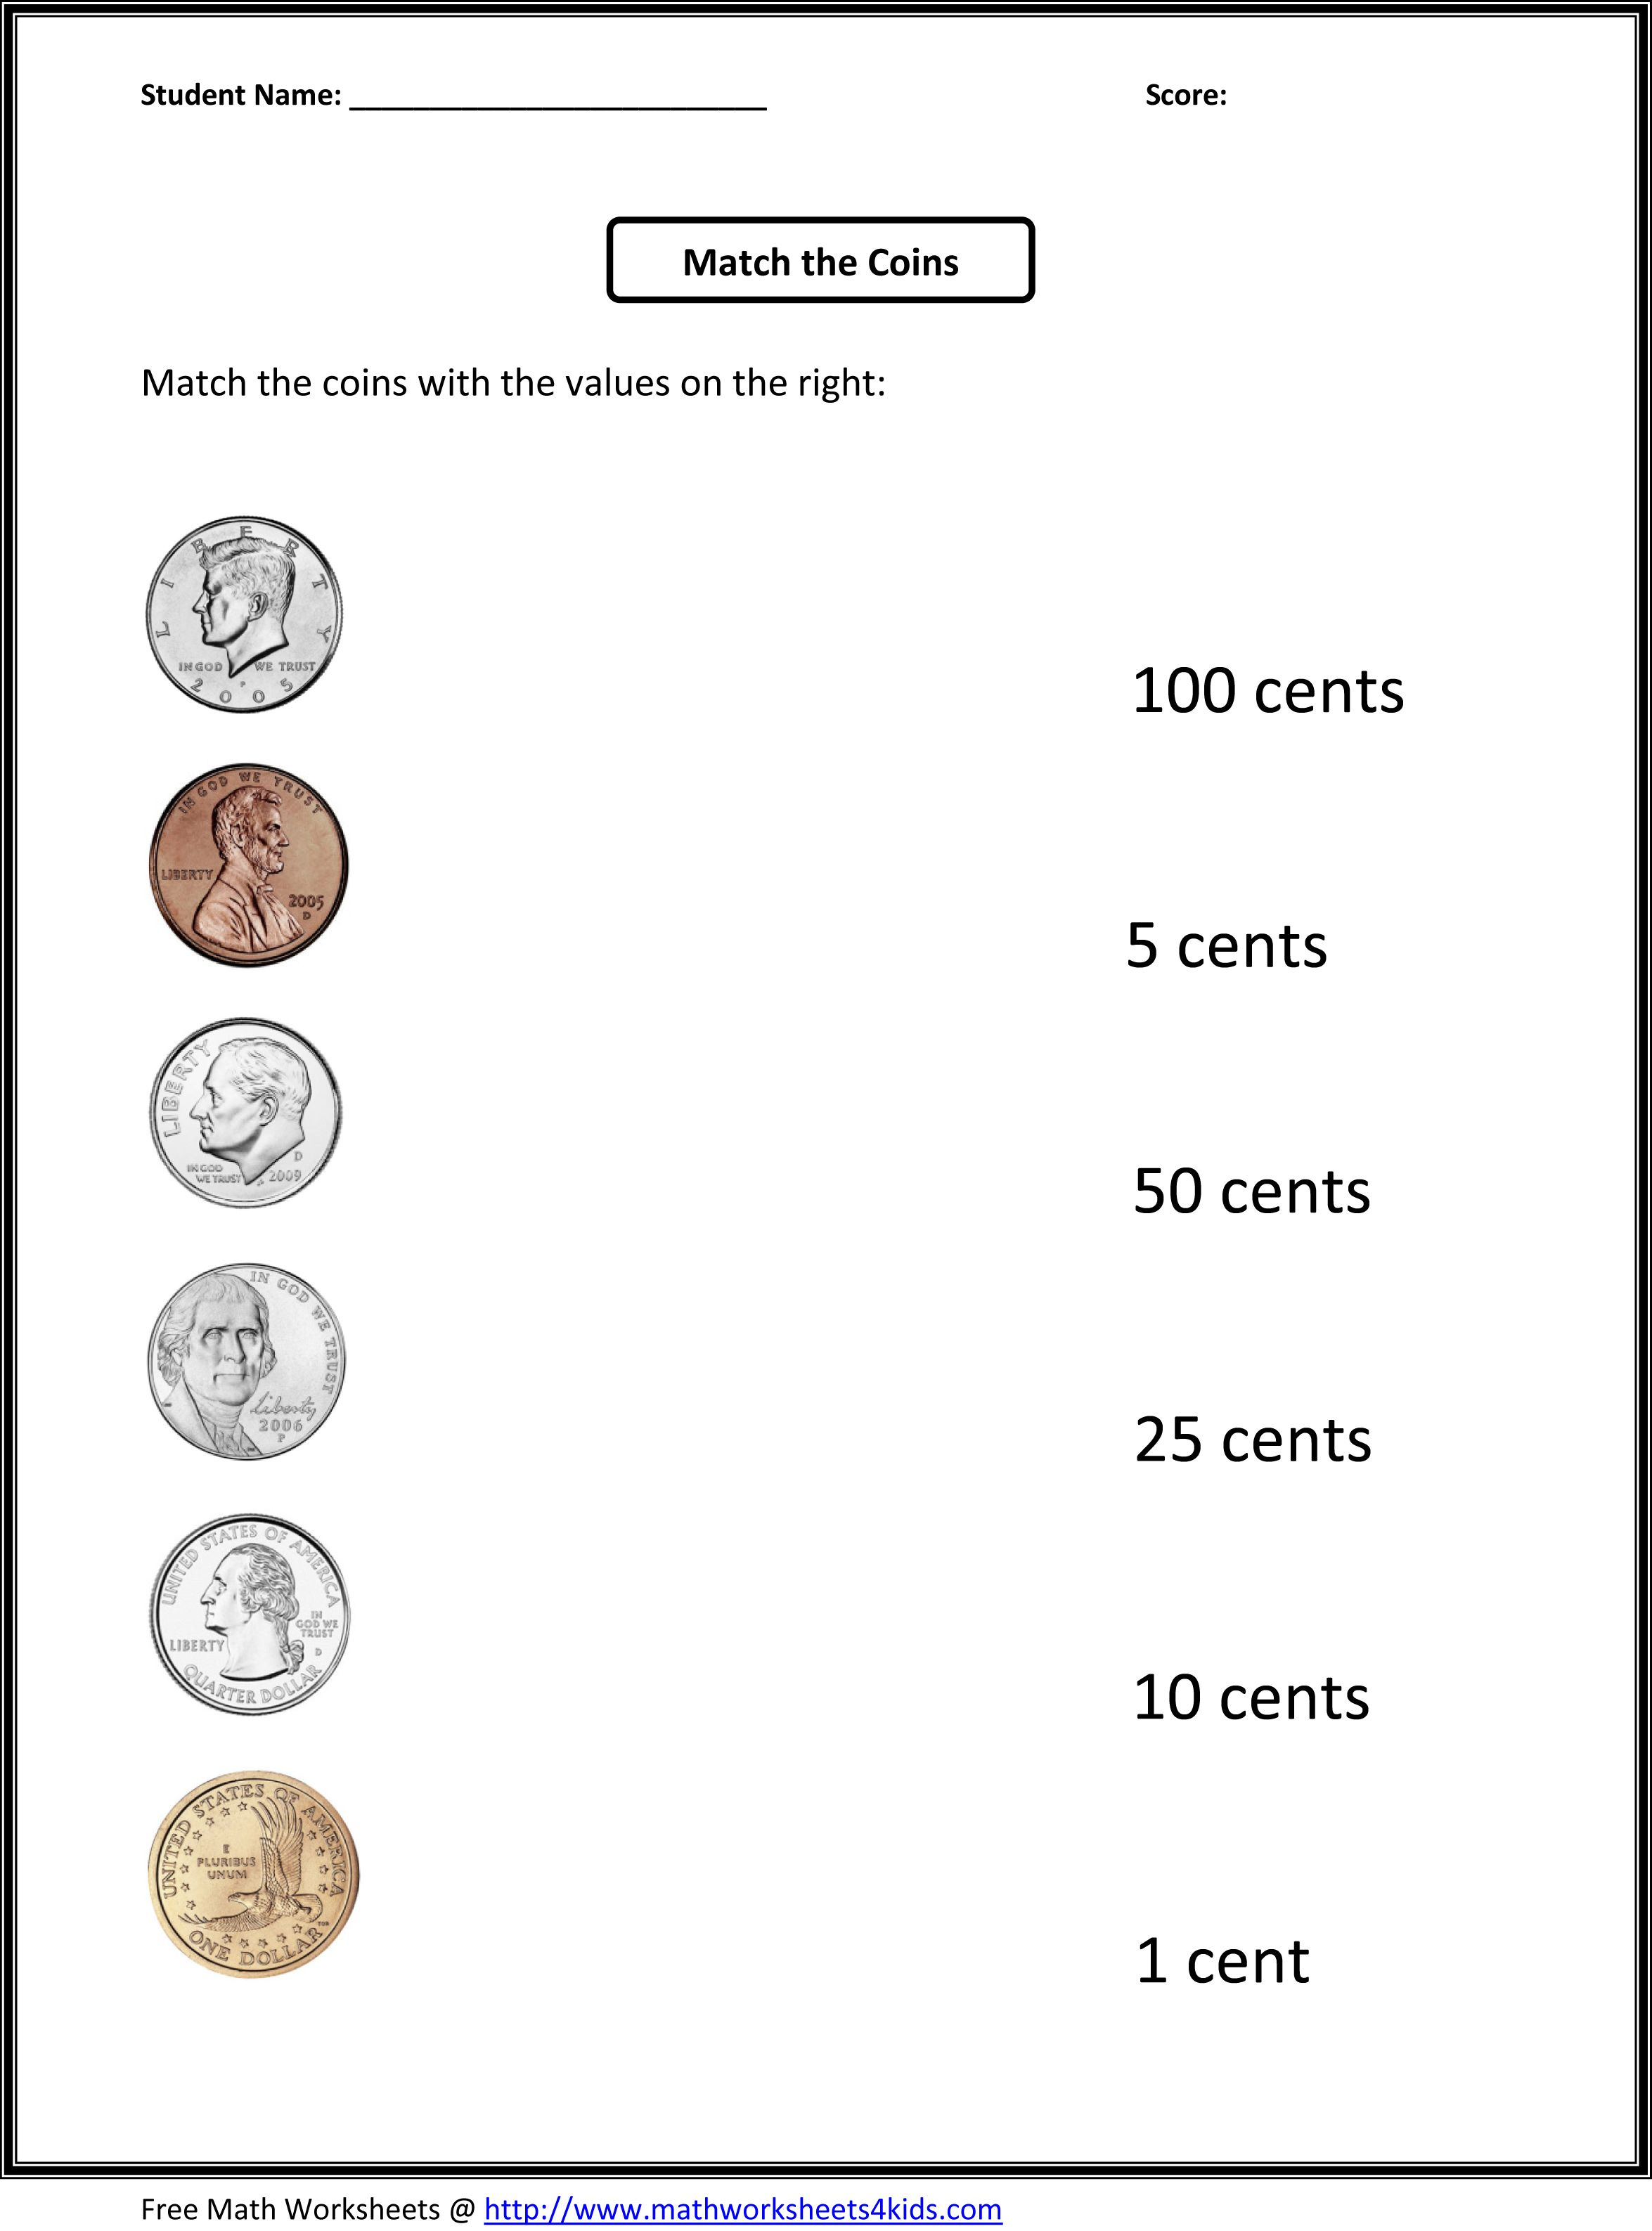 Free 1St Grade Worksheets   Match The Coins And Its Values - Free Printable Grade 1 Phonics Worksheets